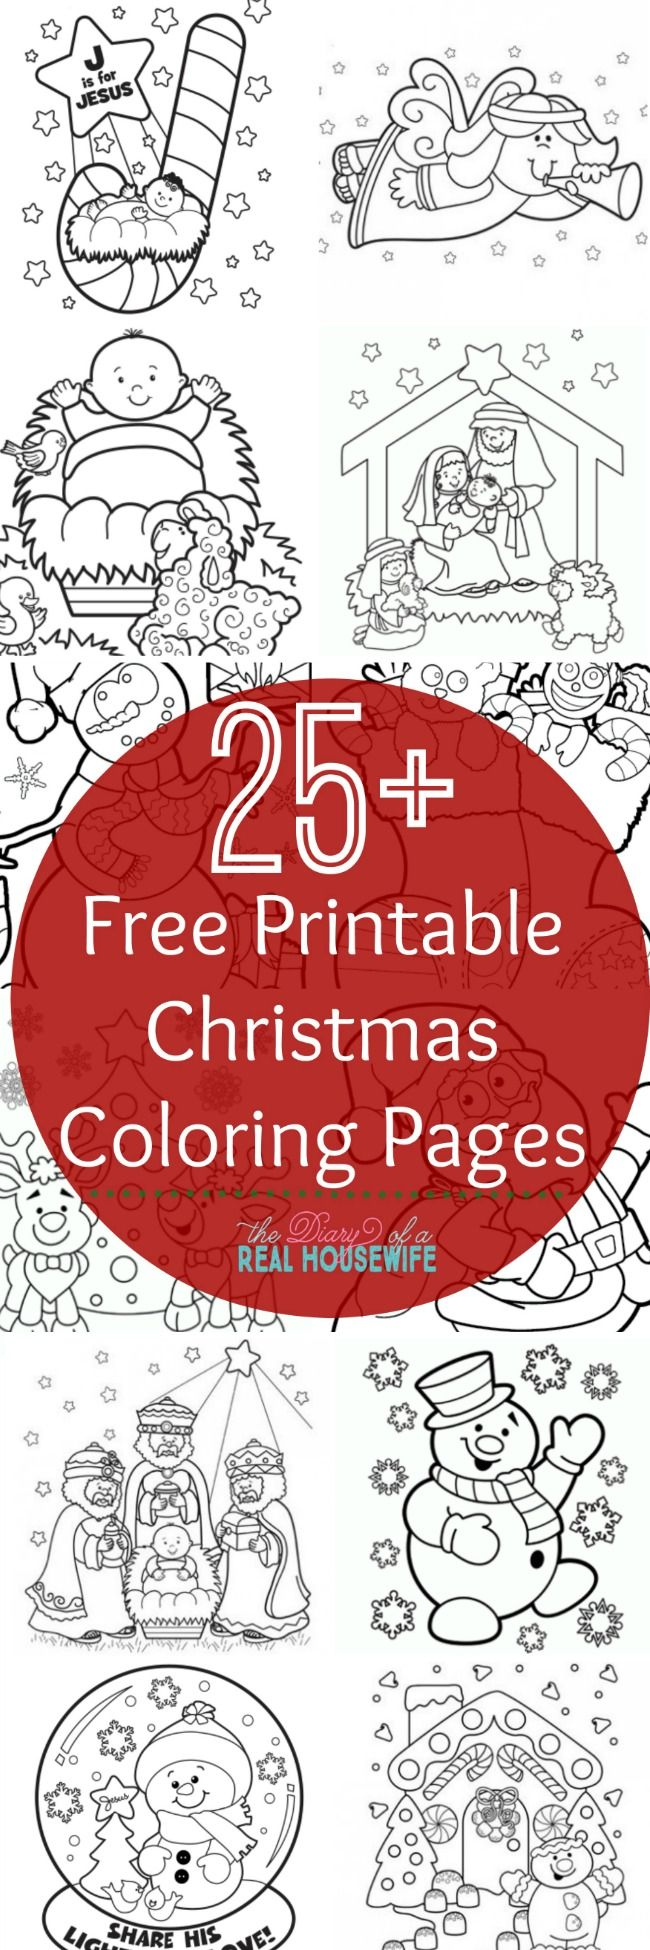 Free Printable Christmas Coloring Pages Kids Holiday CraftsFamily